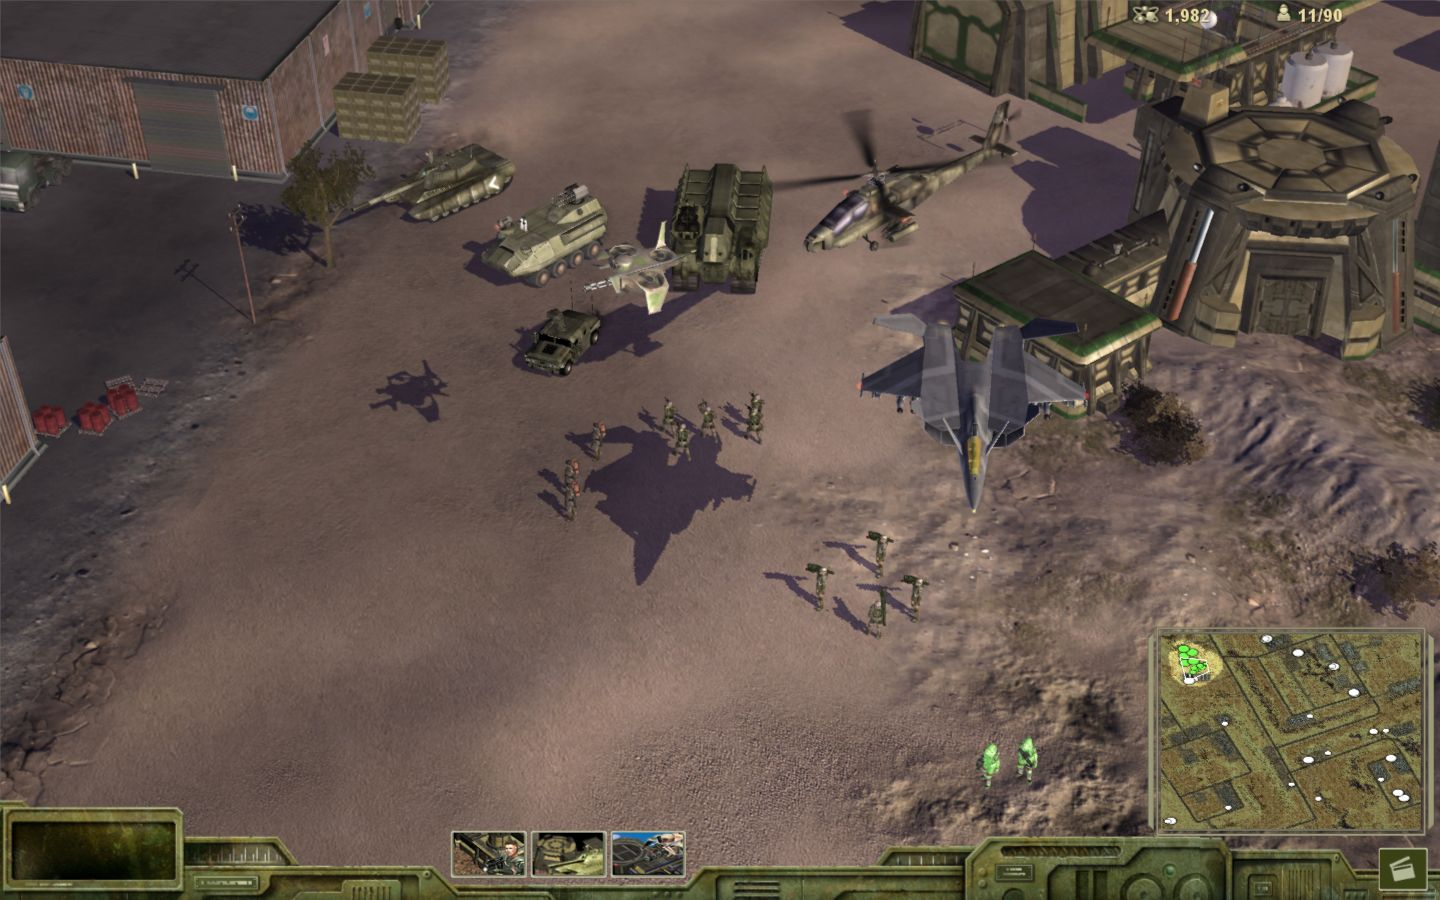 Universe at War: Earth Assault Screenshot 1